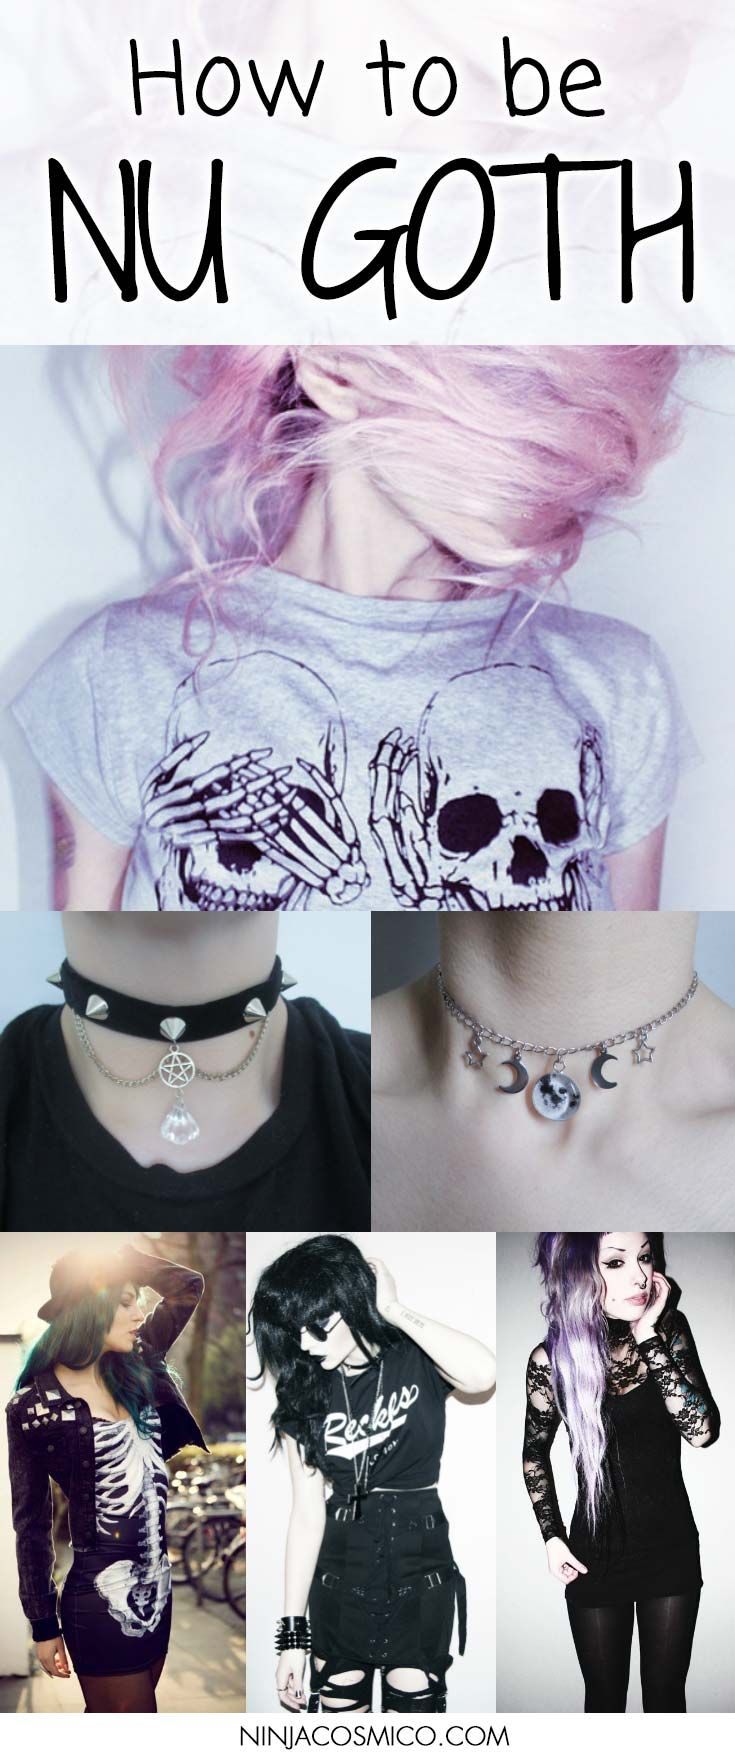 How to be Nu Goth - Want to look like the darker sister of Pastel Goth? Then check this! We'll describe you all the steps to be Nu Goth: Round glasses, Doc Martens boots, bondage inspired harnesses, black lipstick and much more! Read the article and share it to your friends: http://ninjacosmico.com/how-to-nu-goth/